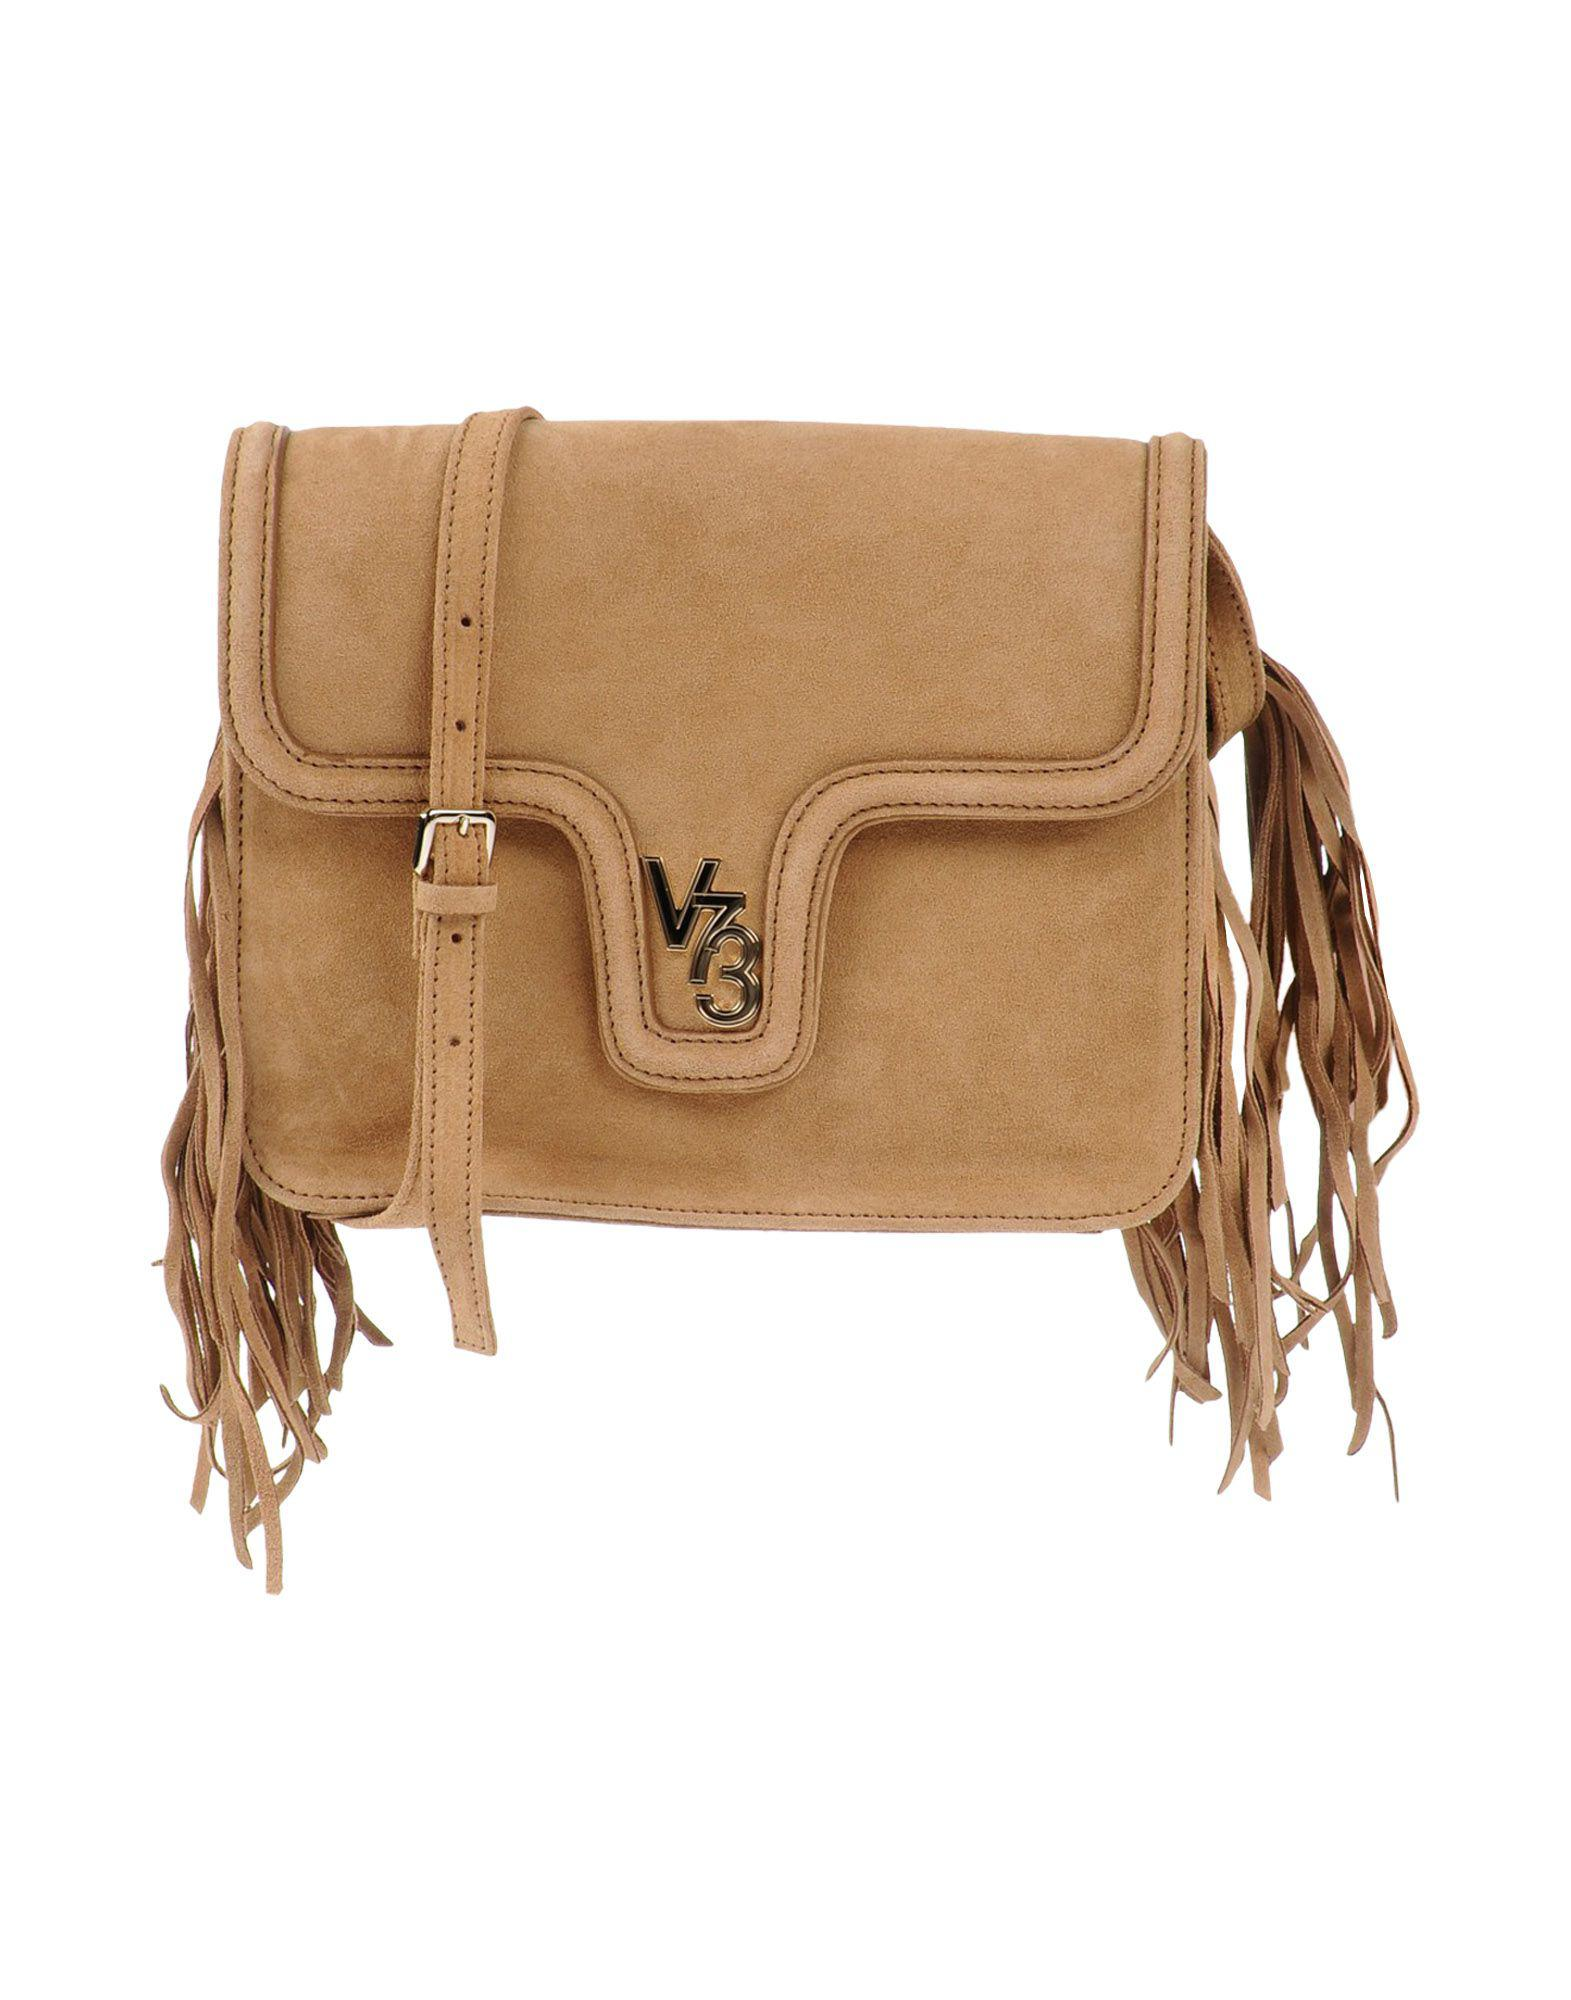 2953c2b404a V73 - Natural Cross-body Bag - Lyst. View fullscreen